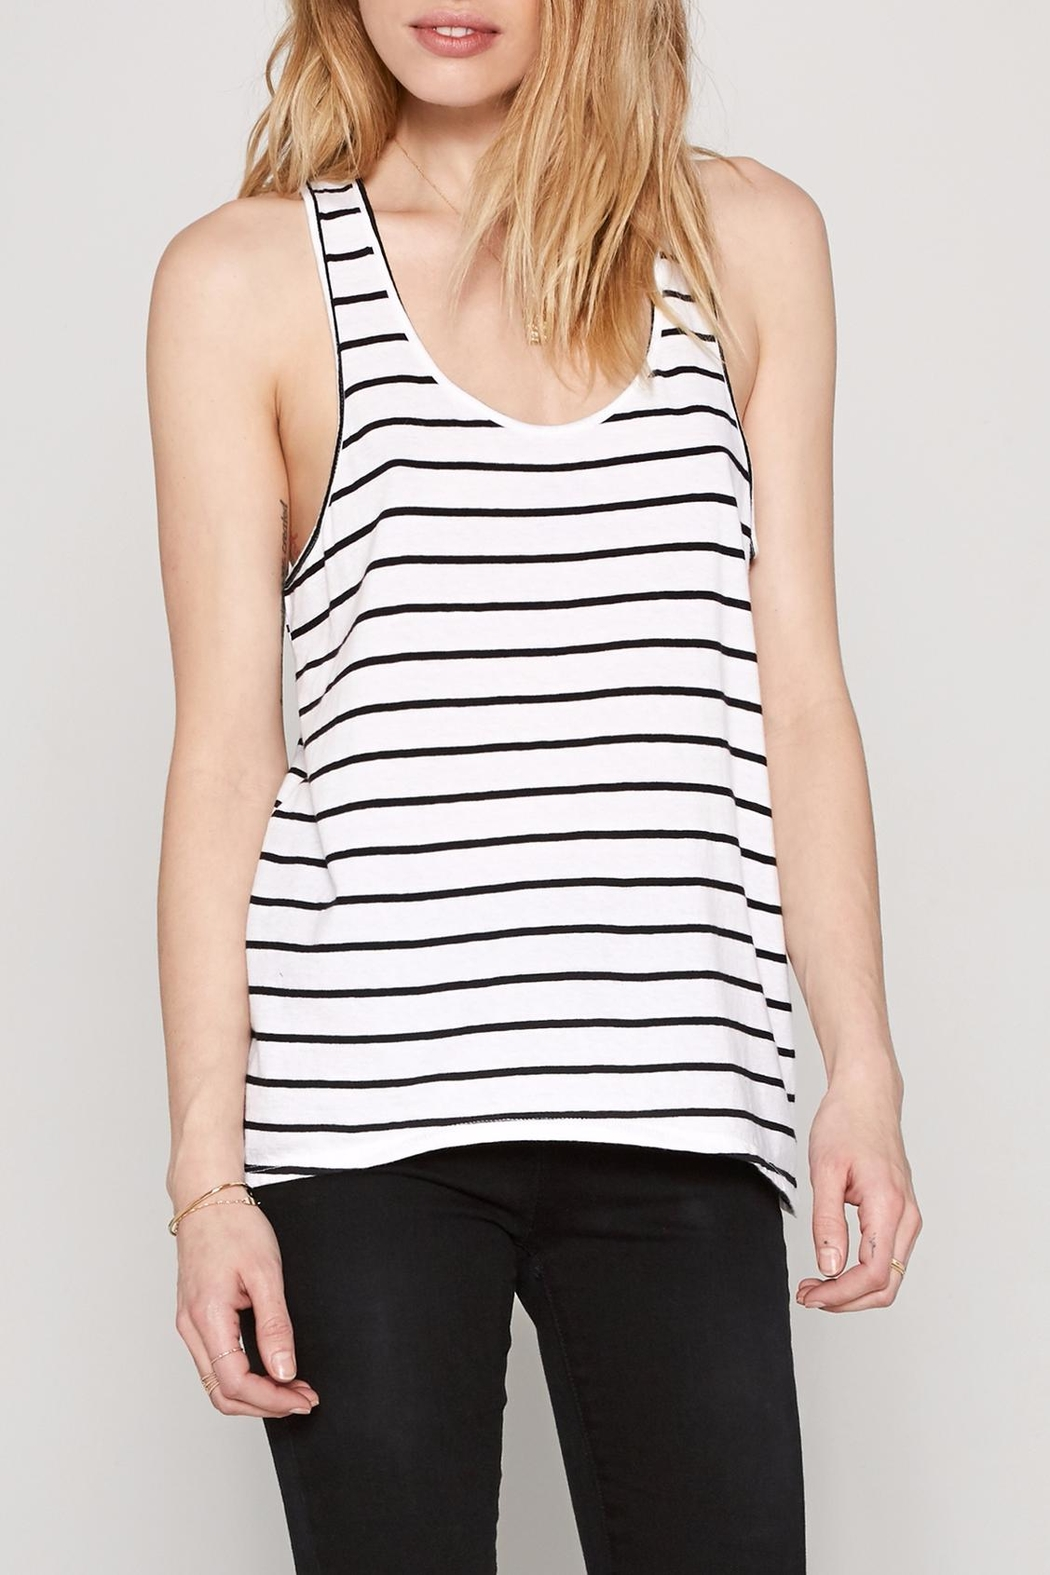 AMUSE SOCIETY Davis Stripe Tank Top - Front Cropped Image